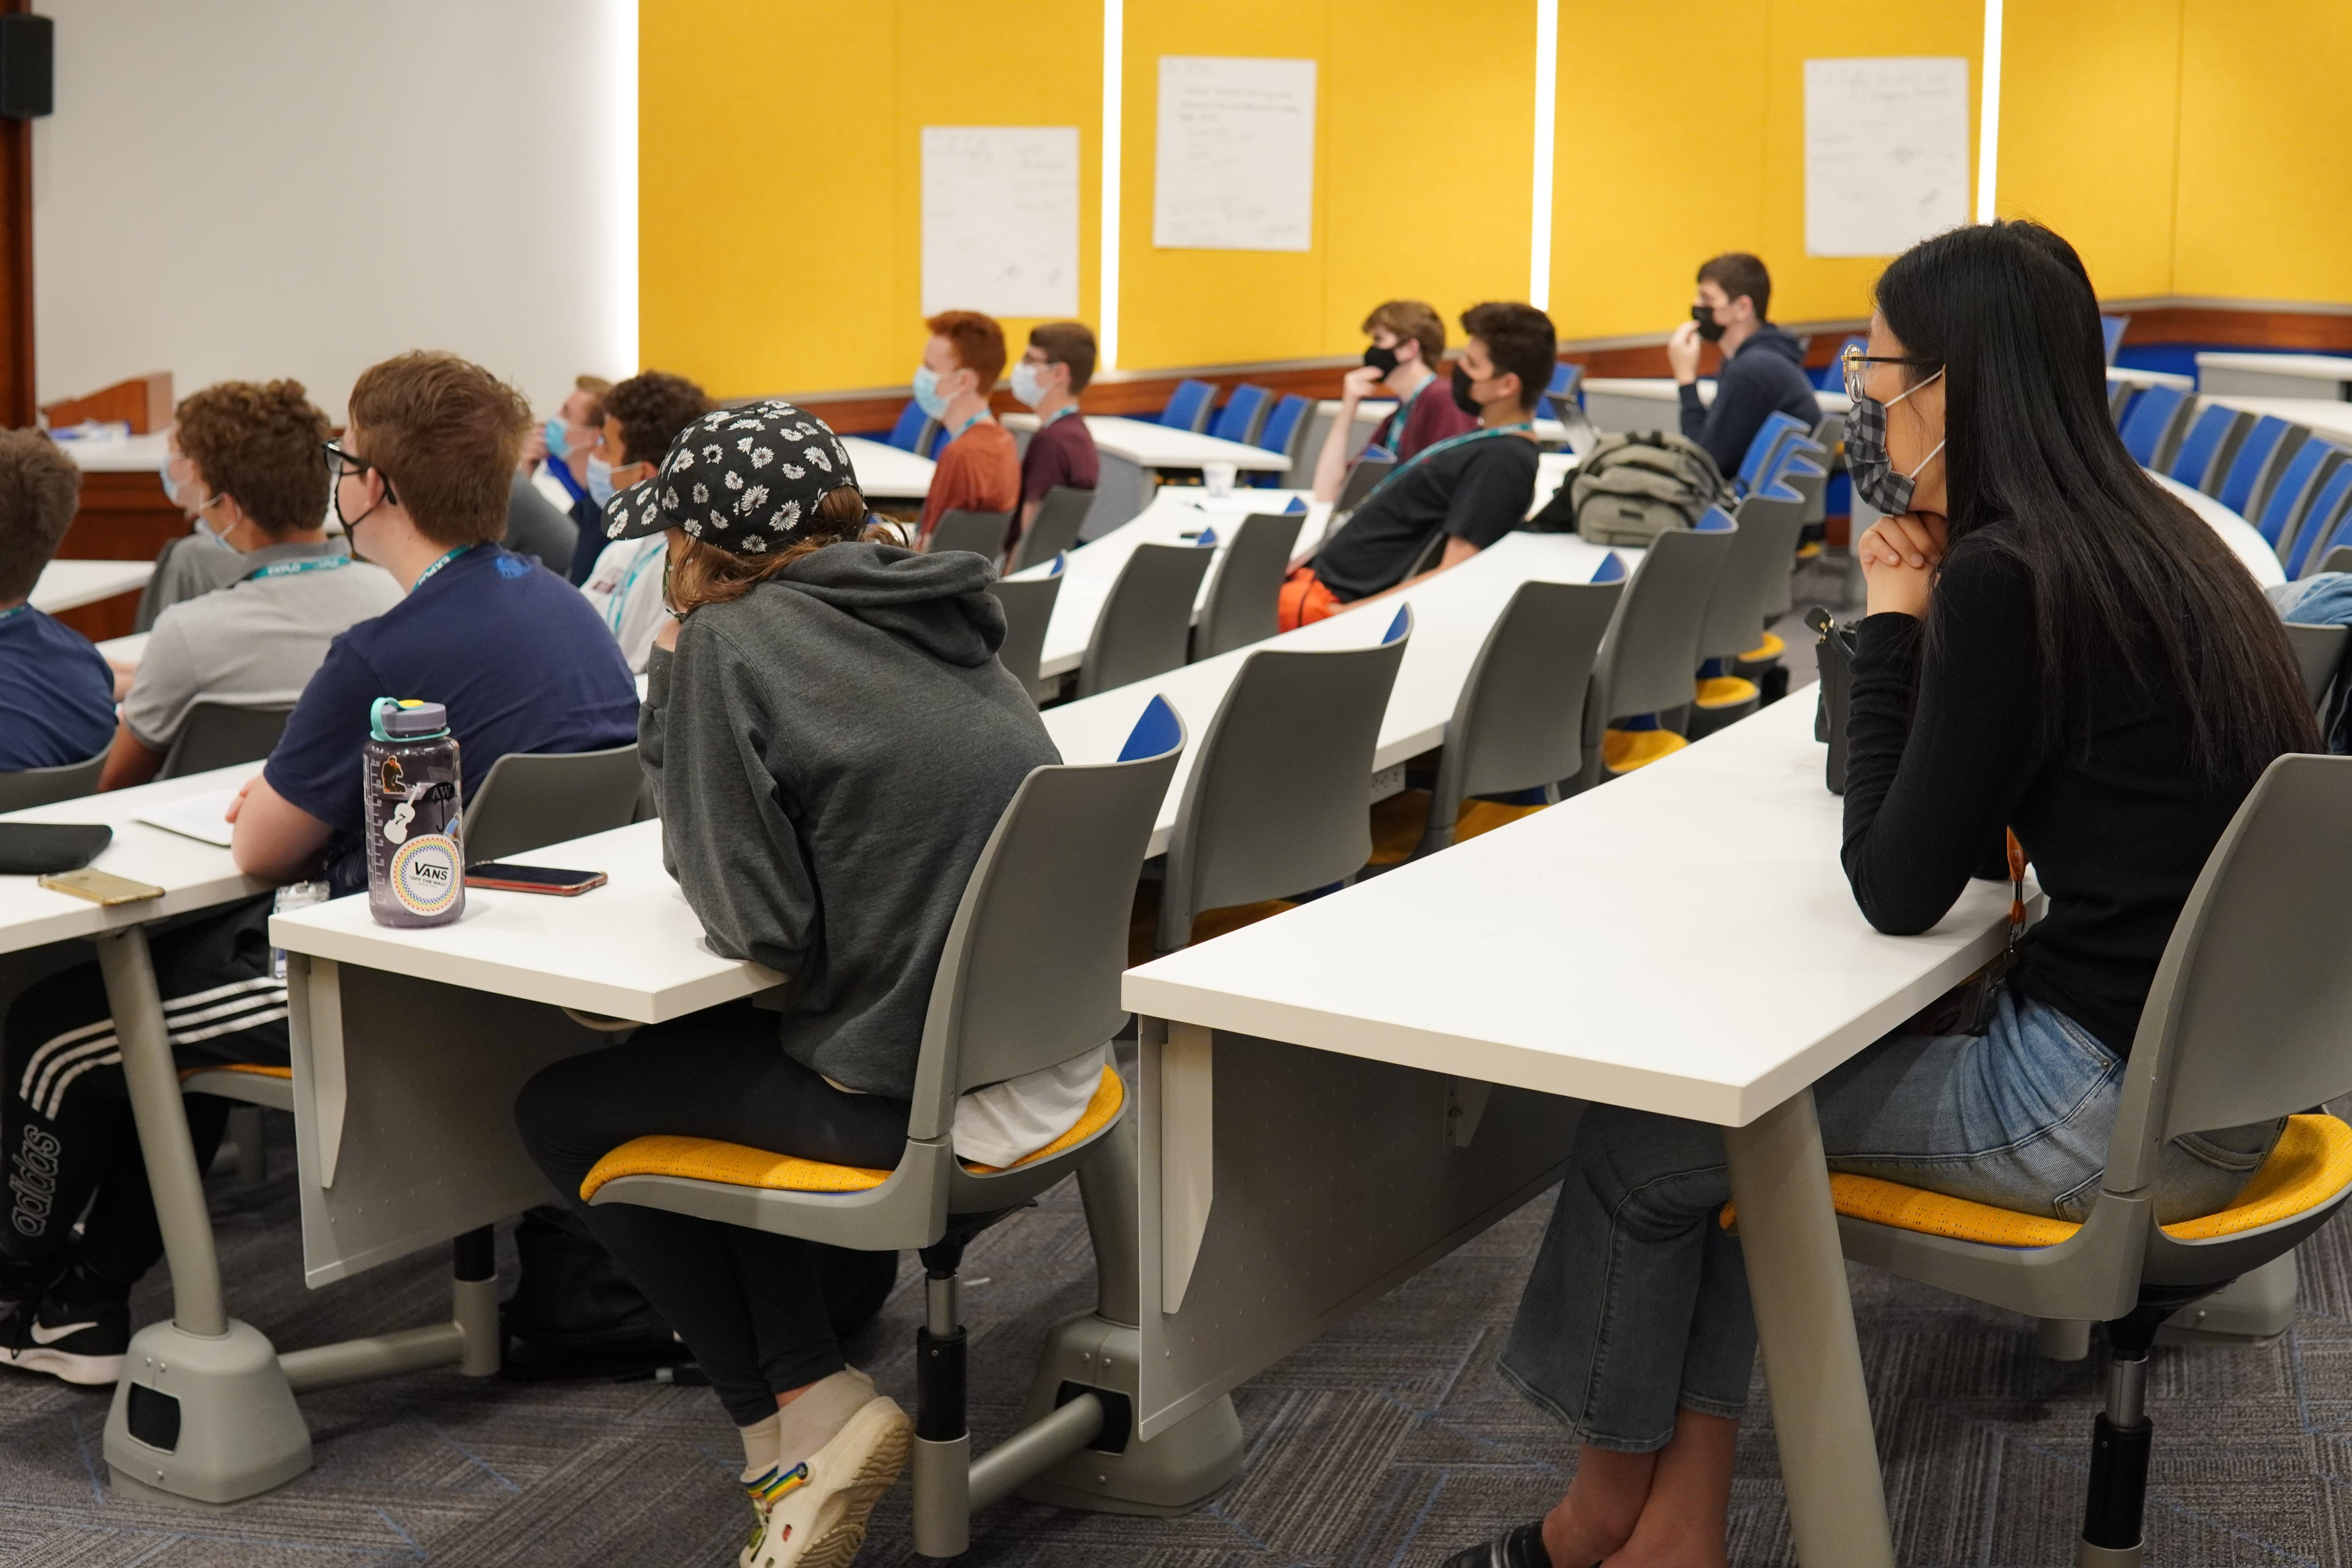 Lead Instructor Ann sits in the back of a lecture hall as the students in front of her listen to their guest speaker, Professor Terry Yoo.